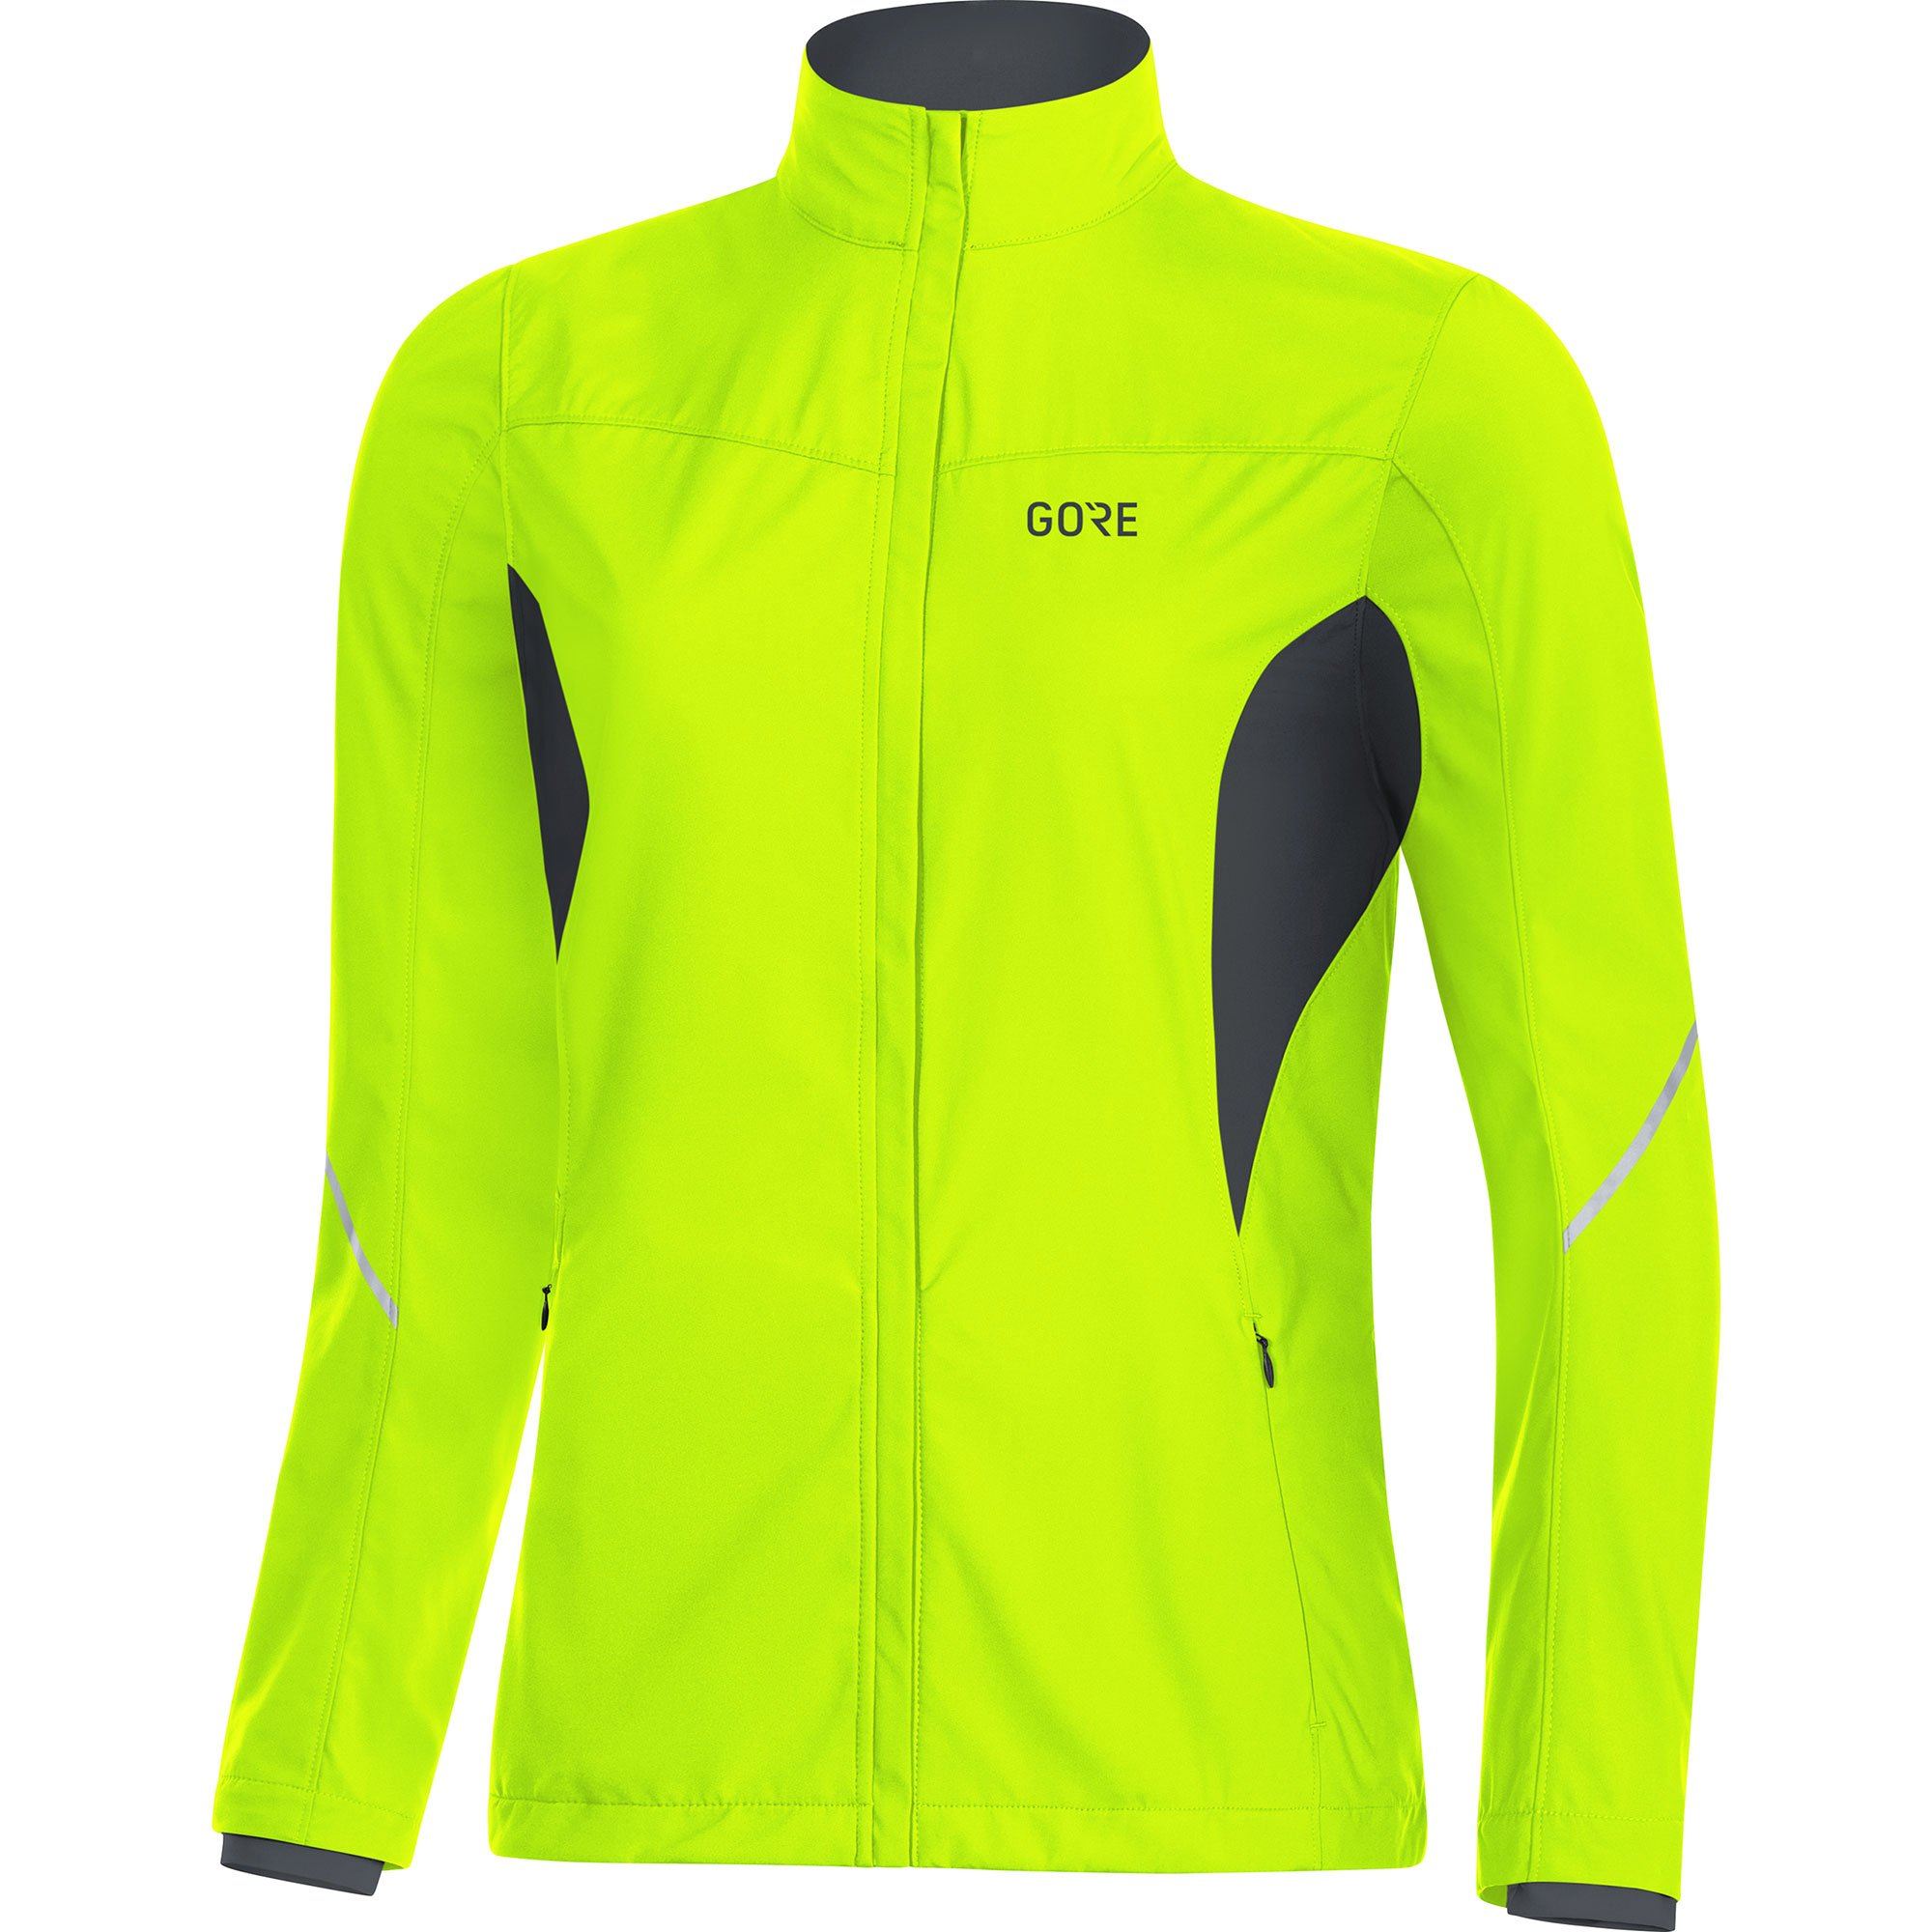 Gore Women's R3 Wmn Partial Gws Jacket, neon Yellow/Black, M by GORE WEAR (Image #1)